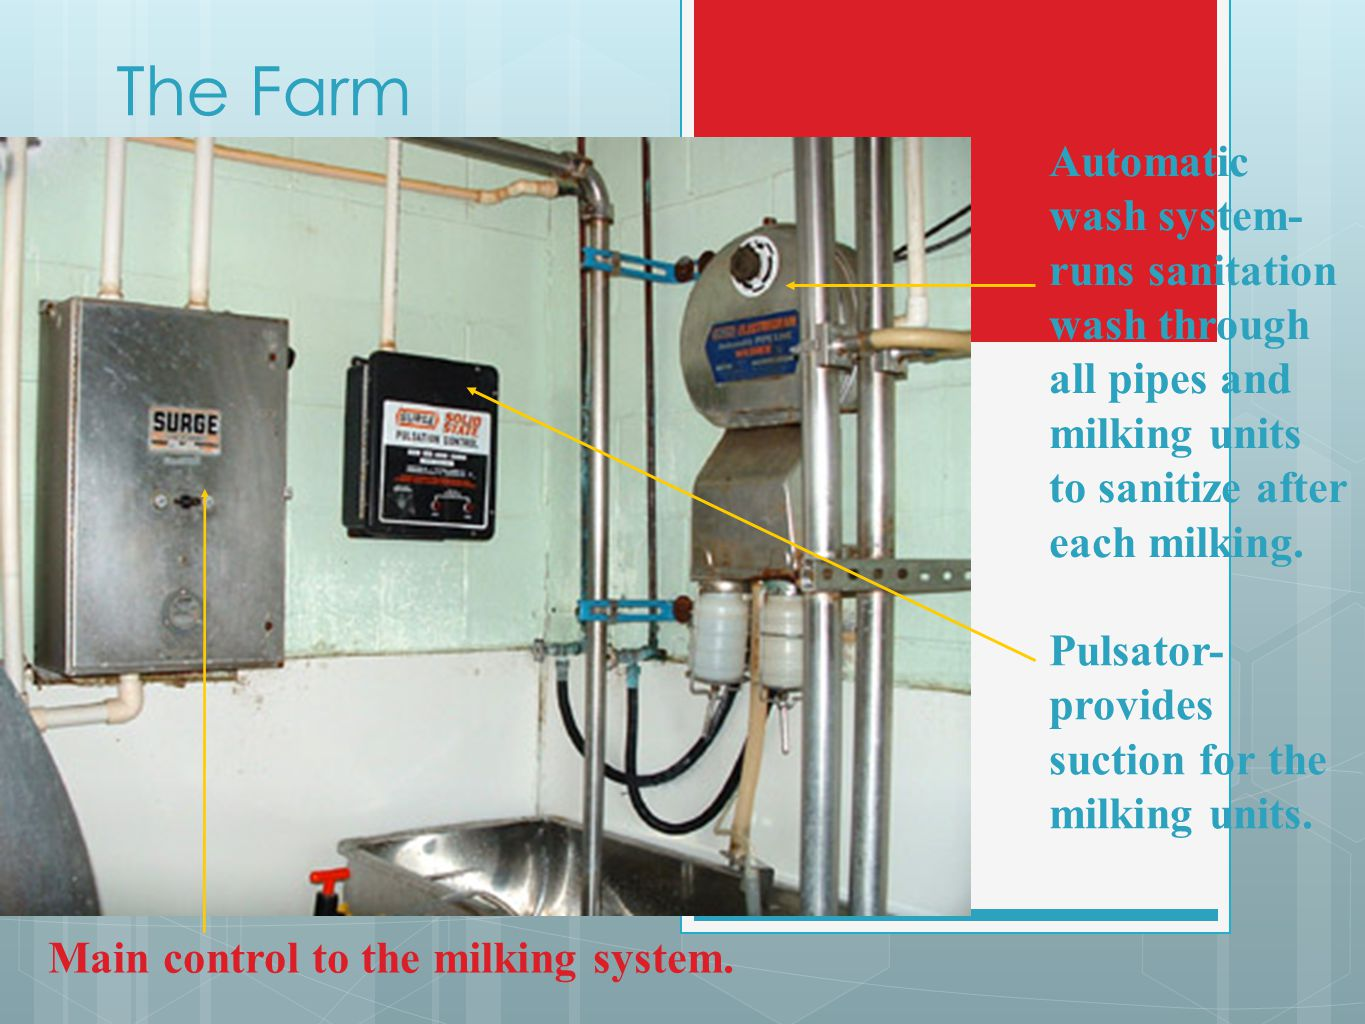 The Farm Automatic wash system- runs sanitation wash through all pipes and milking units to sanitize after each milking.